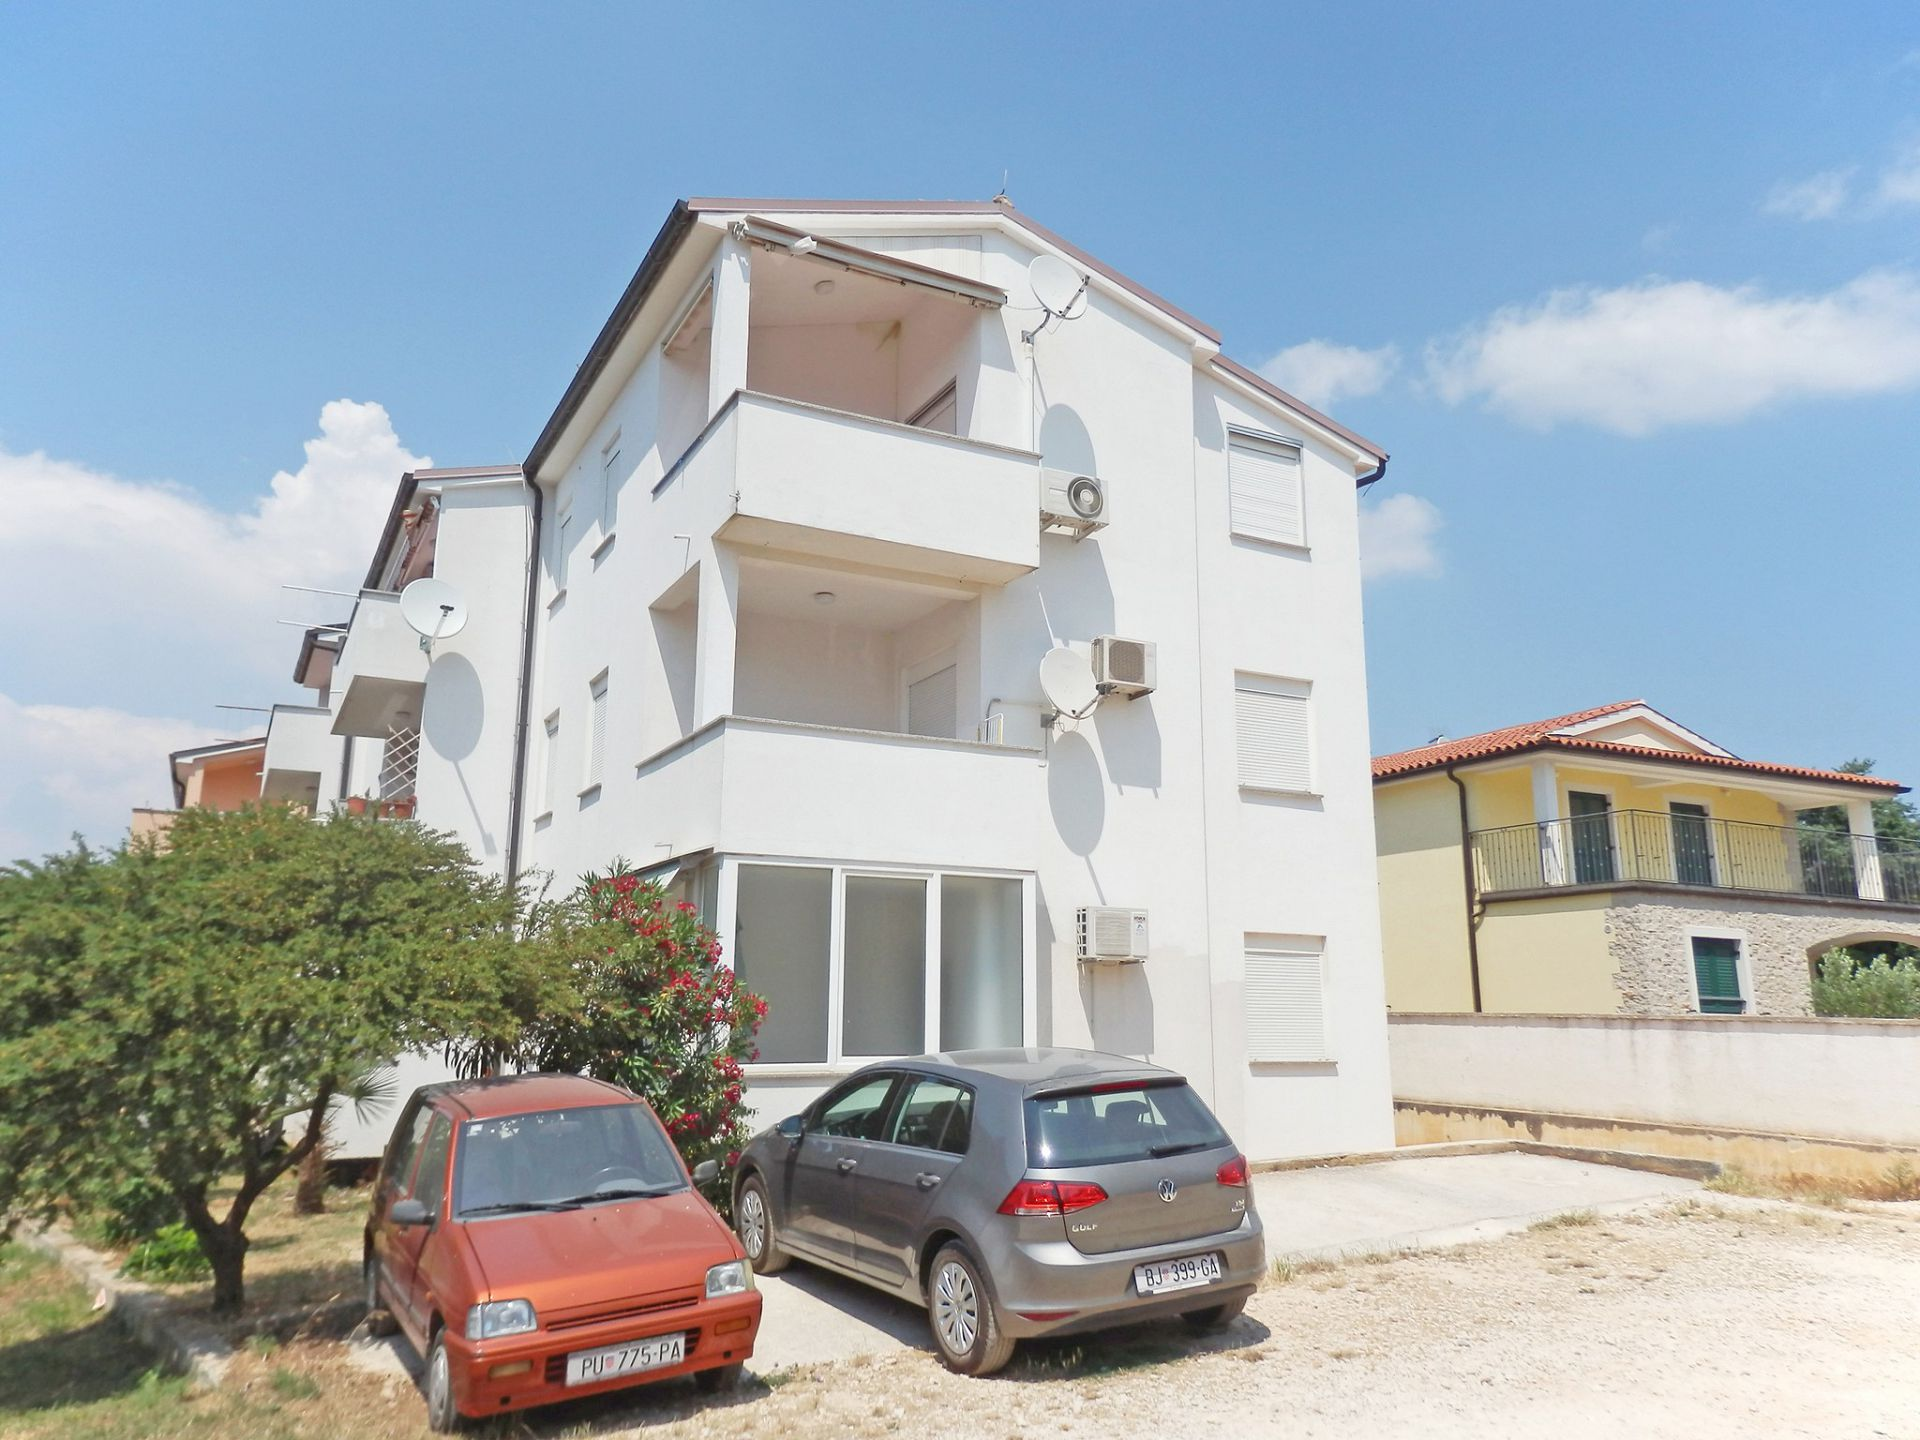 35593 - Medulin - Apartments Croatia